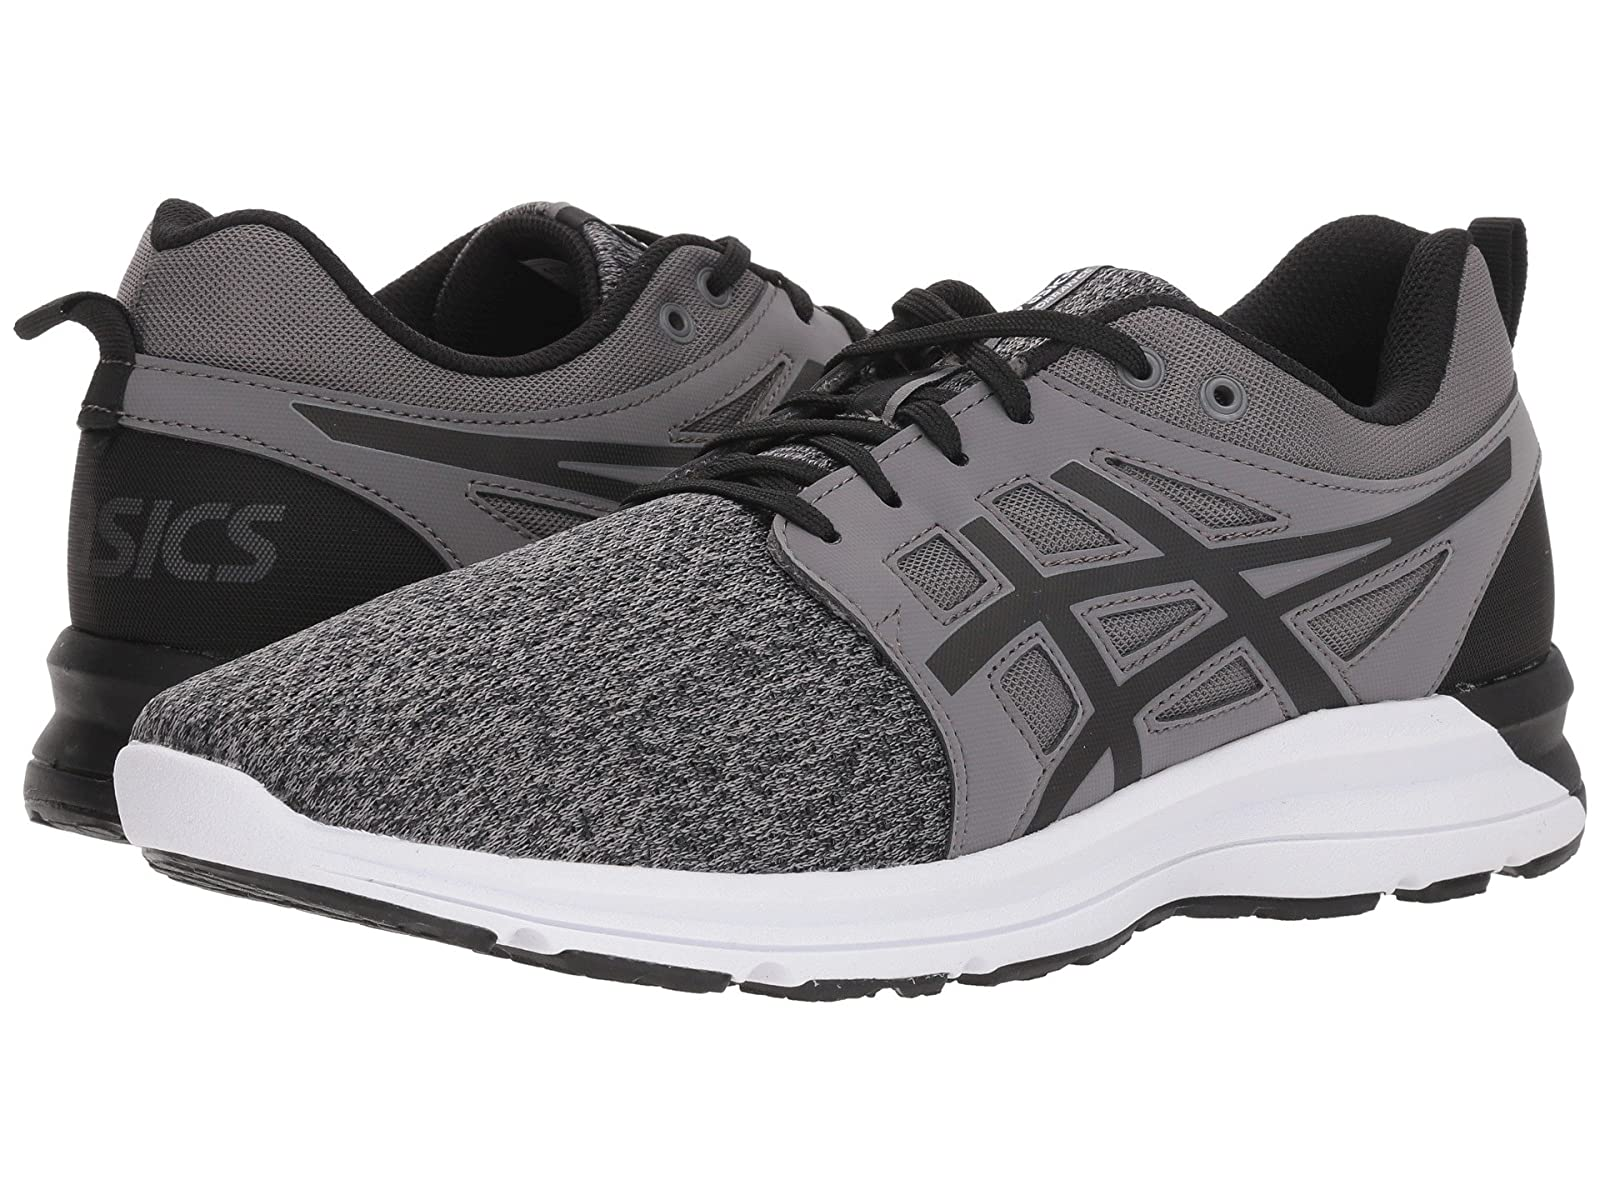 ASICS GEL-TorranceAtmospheric grades have affordable shoes